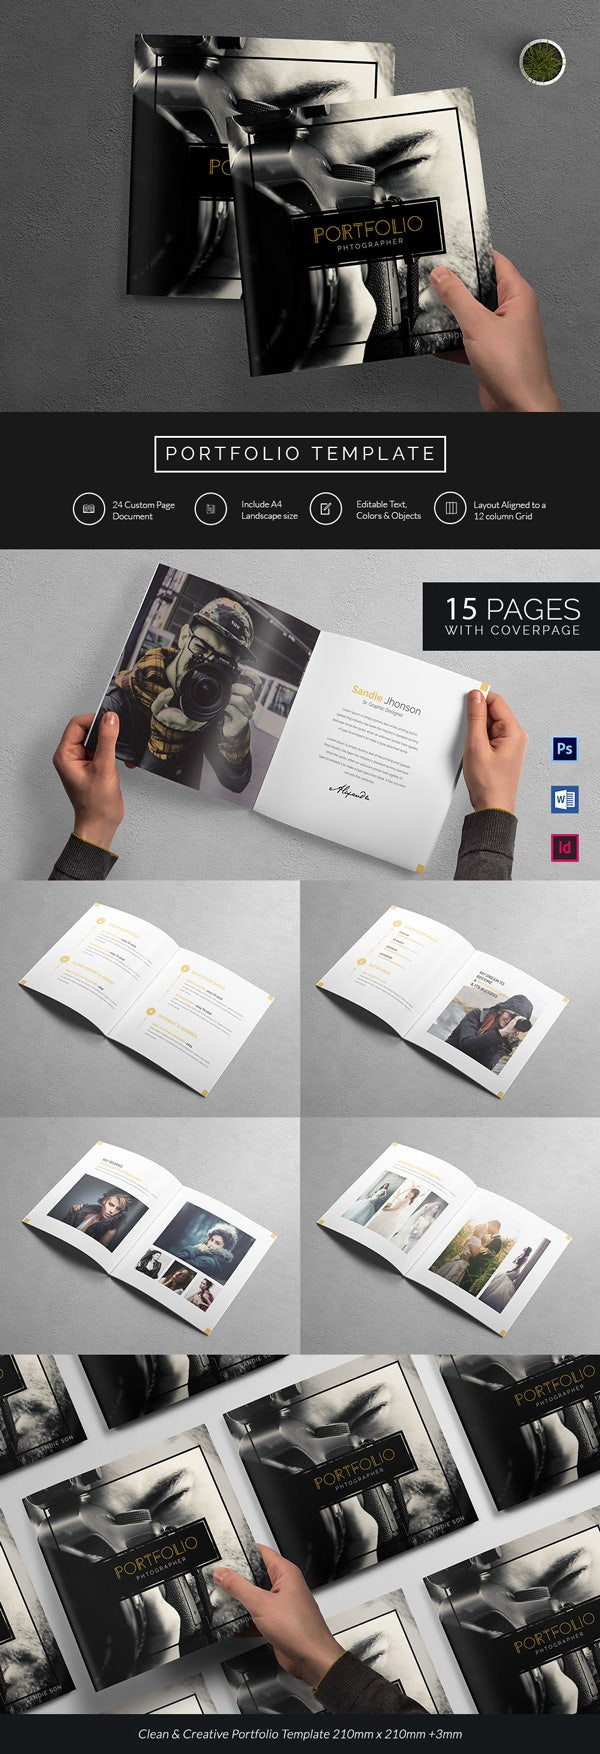 Sample Photography Portfolio Template